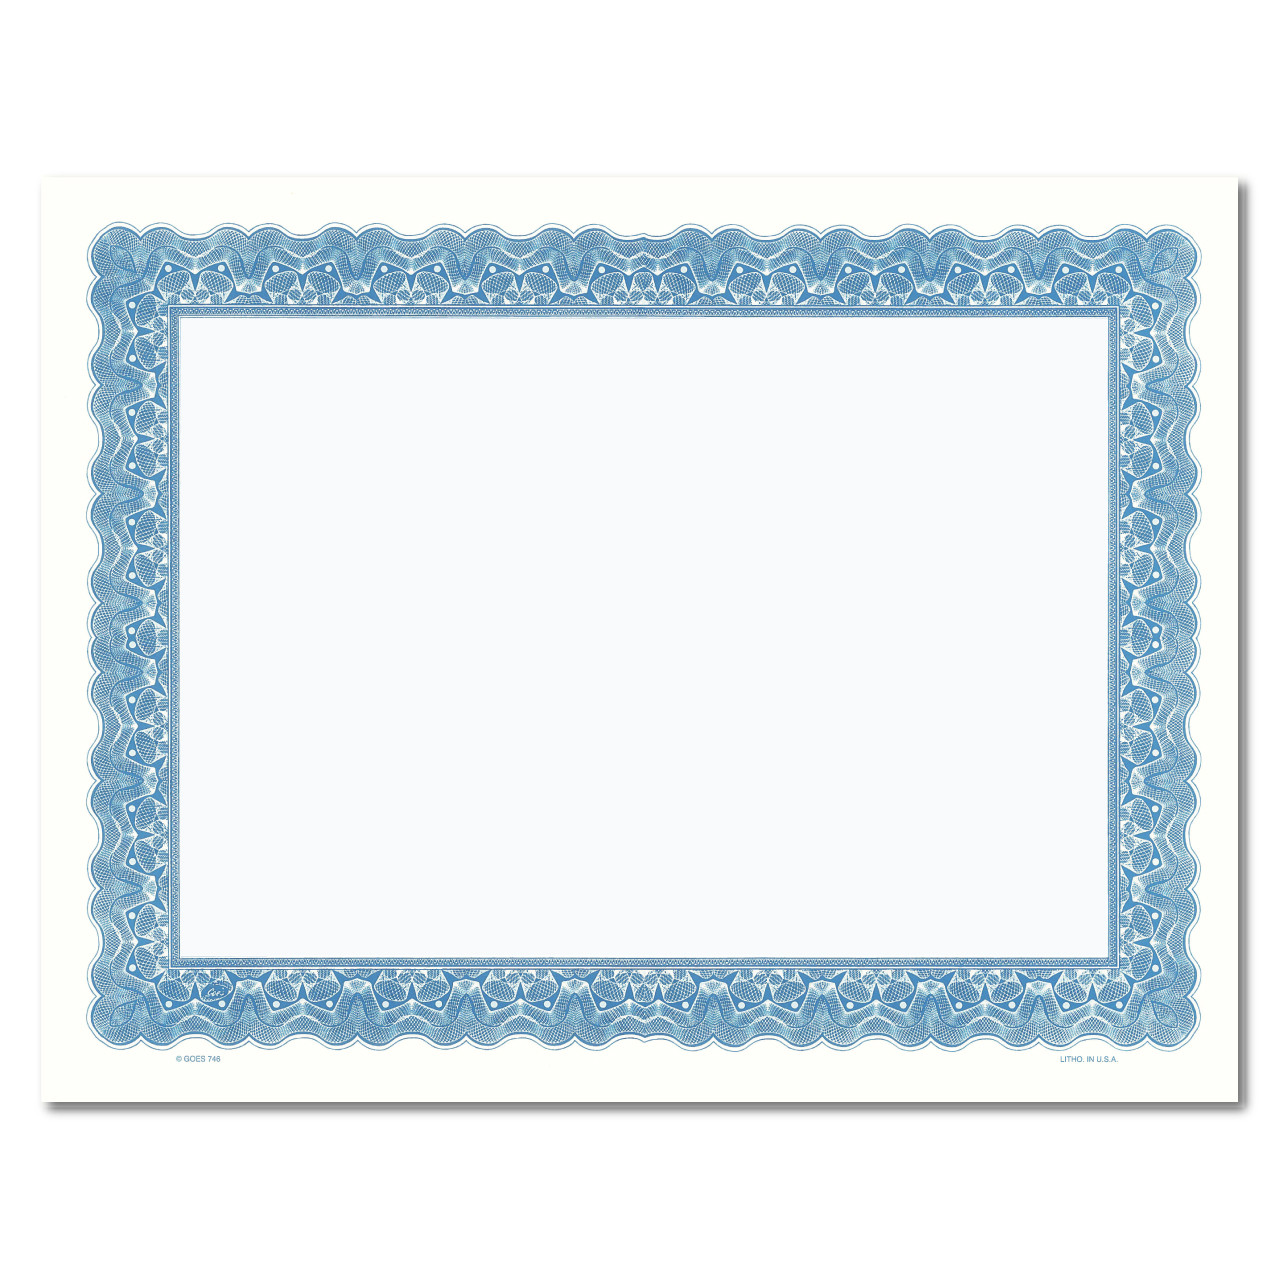 Certificate Paper - Full Border w/Matching Center BLUE